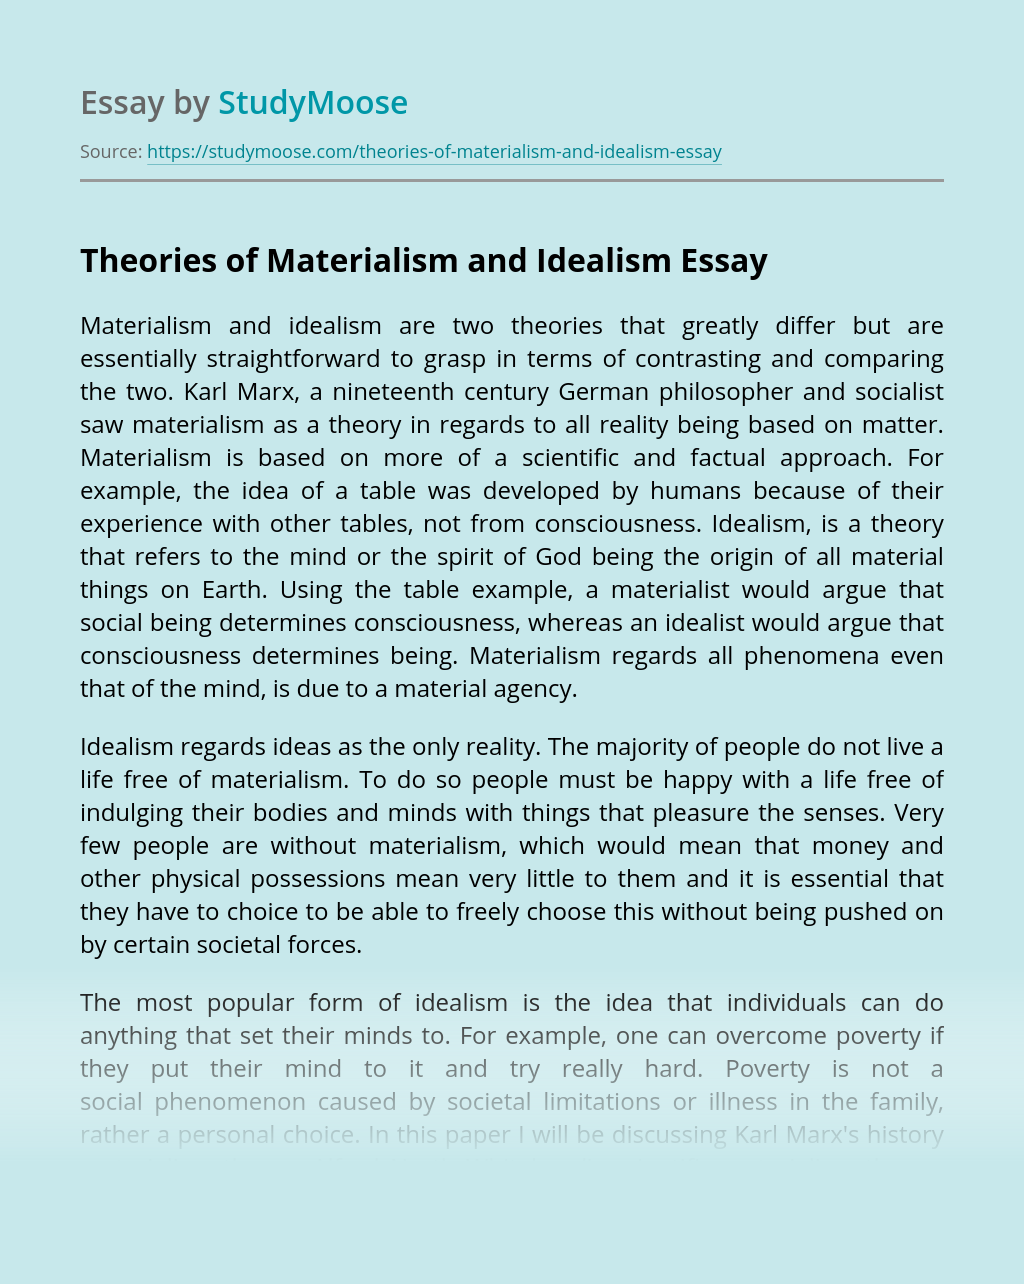 Theories of Materialism and Idealism